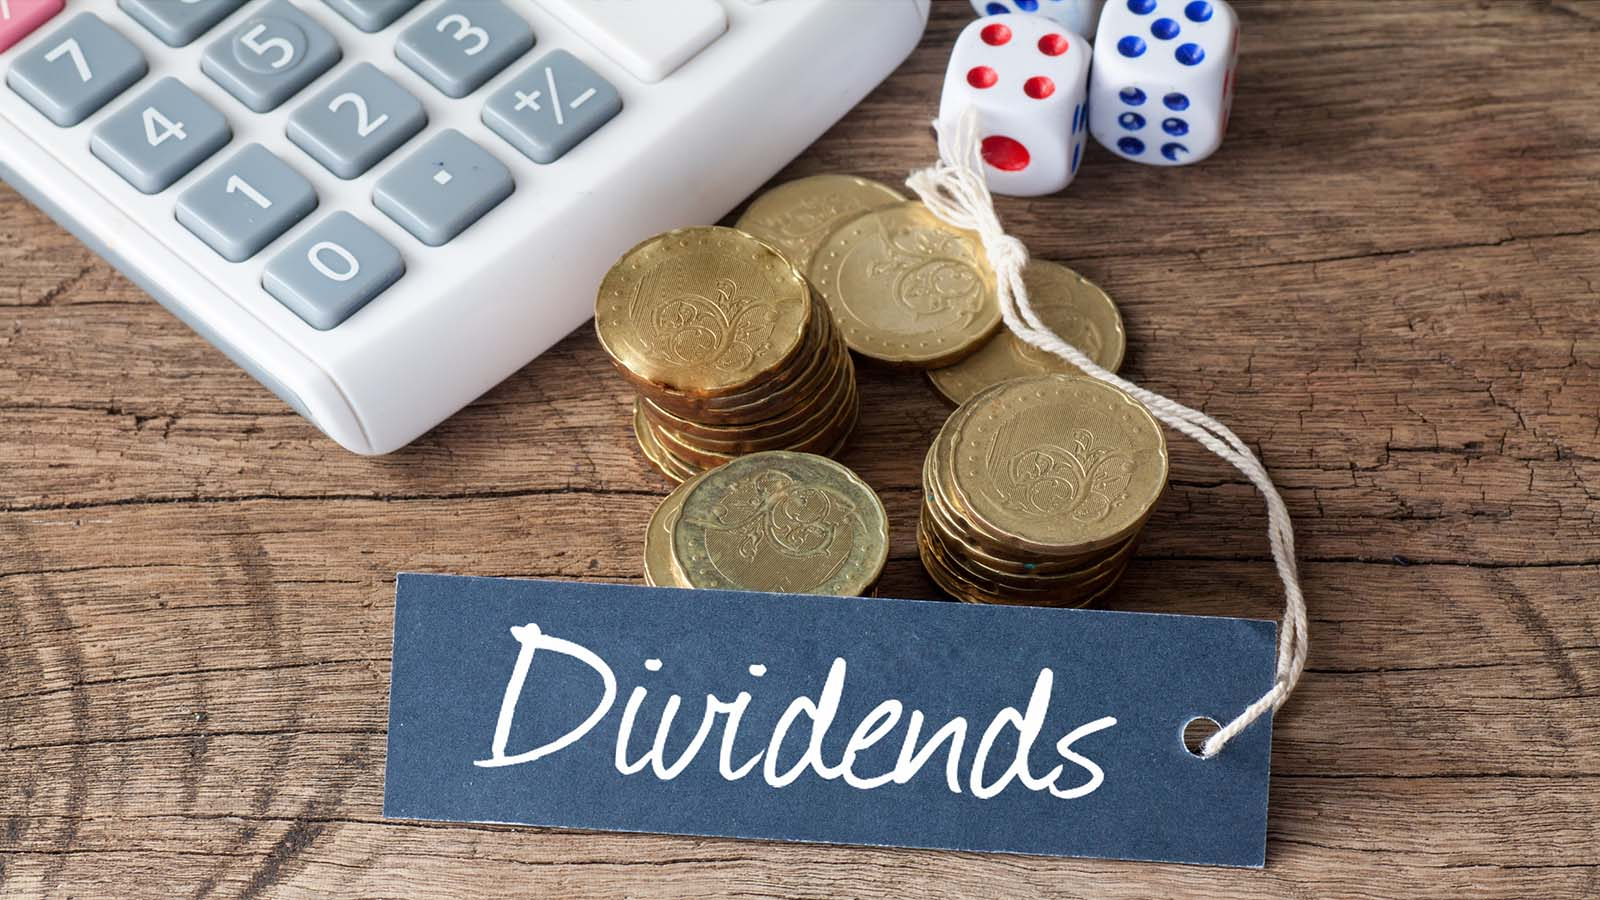 Top Dividend Stocks 2020.10 Best Dividend Stocks To Buy For The Rest Of 2019 And Beyond Cvs